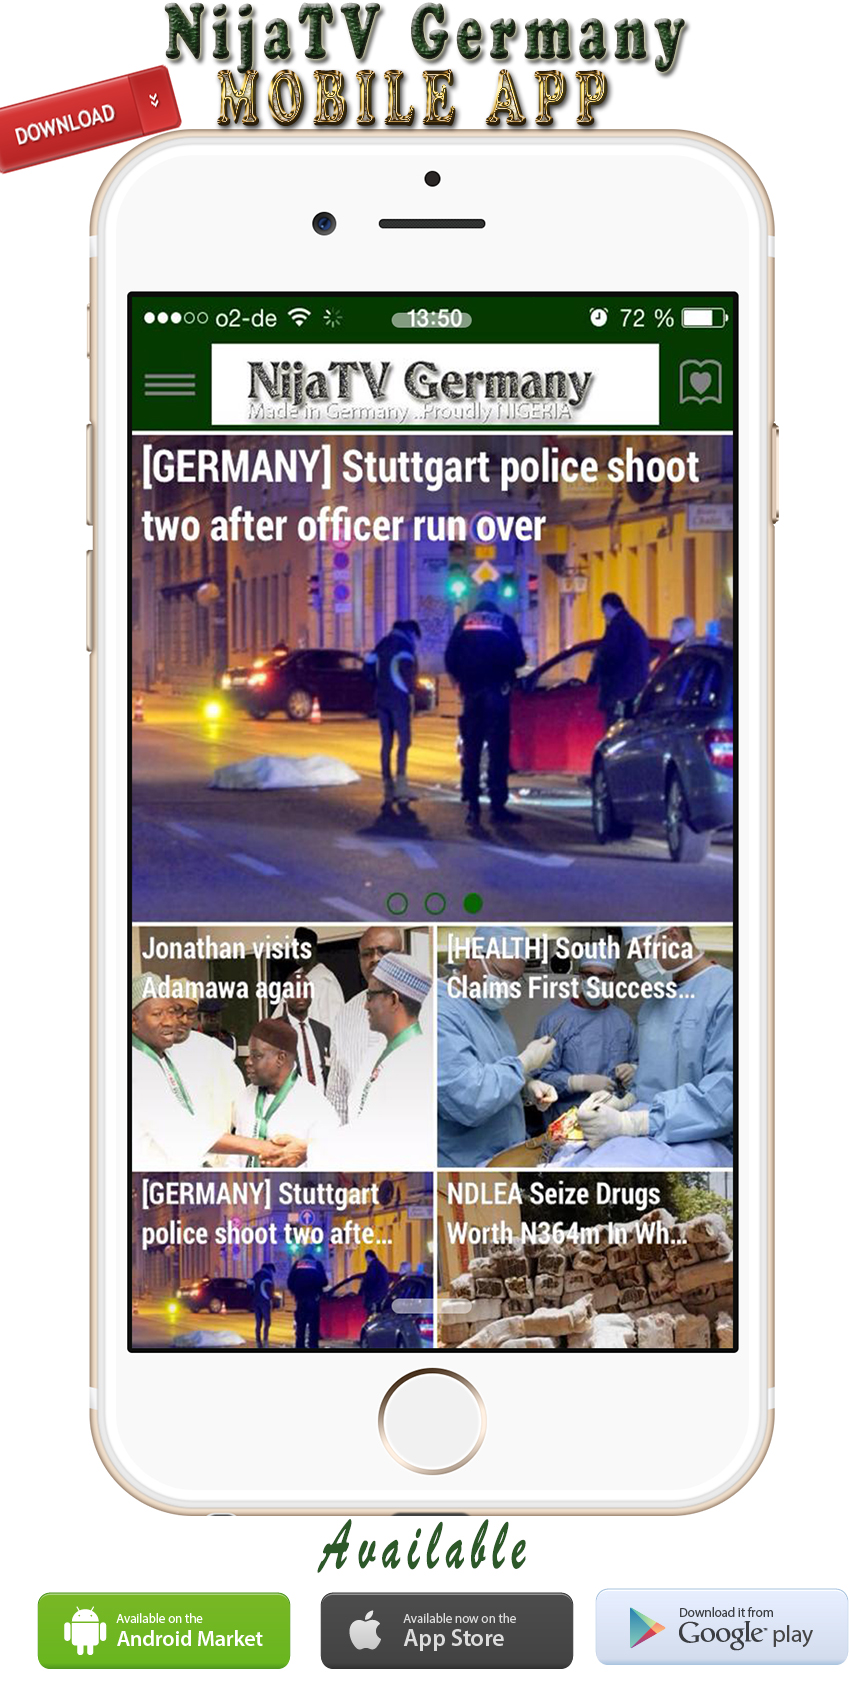 NijaTV Germany launches its Mobile APP